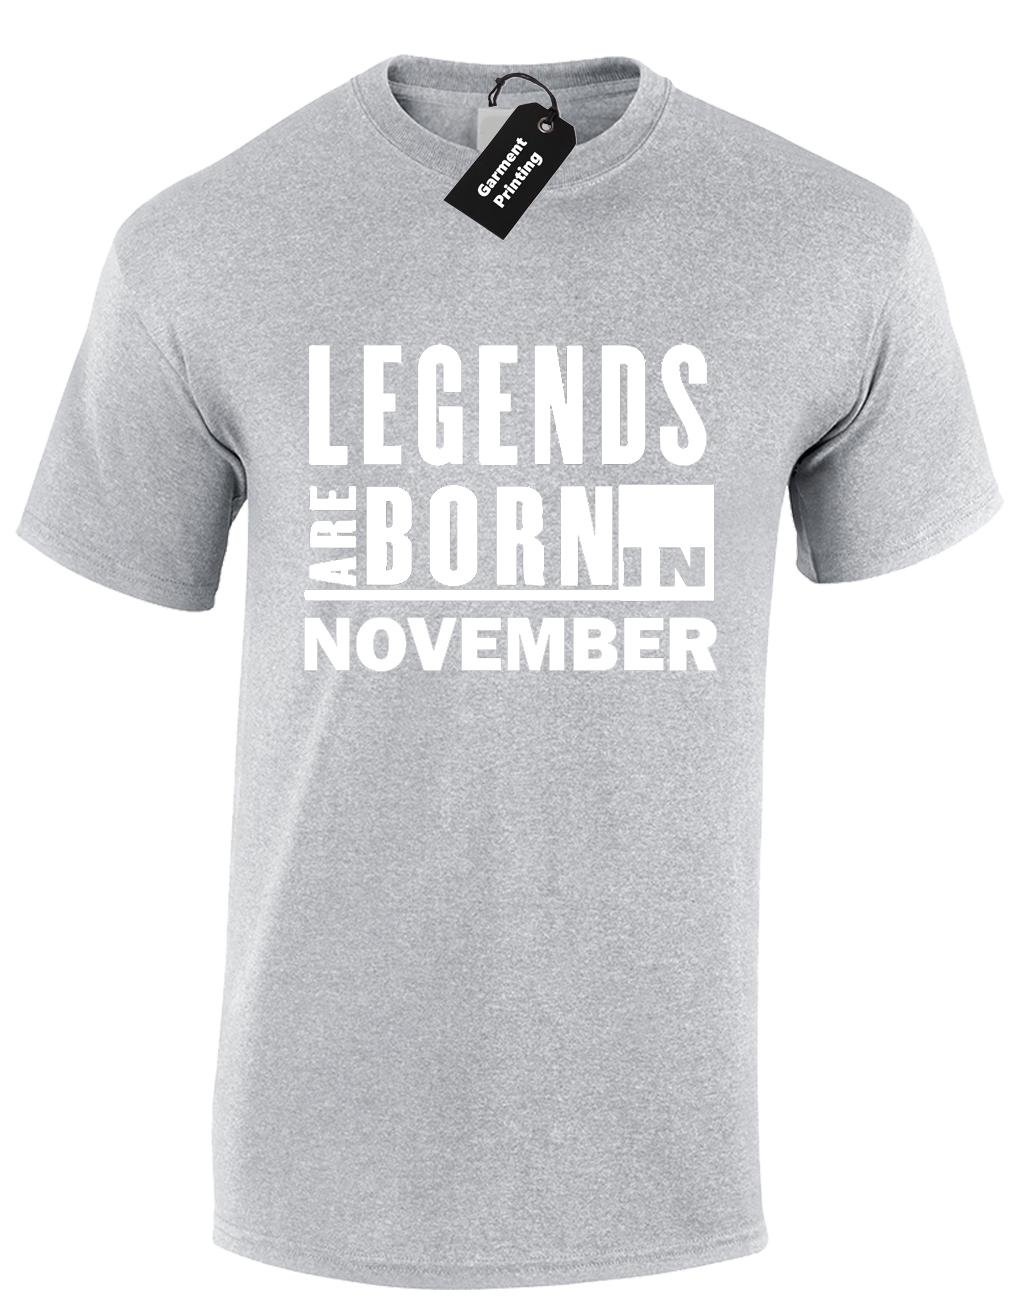 LEGENDS ARE BORN IN NOVEMBER MENS T SHIRT BIRTH MONTH SLOGAN NOVELTY Funny Unisex Casual Tee Gift Awesome Shirts Teet From Tshirtsinc